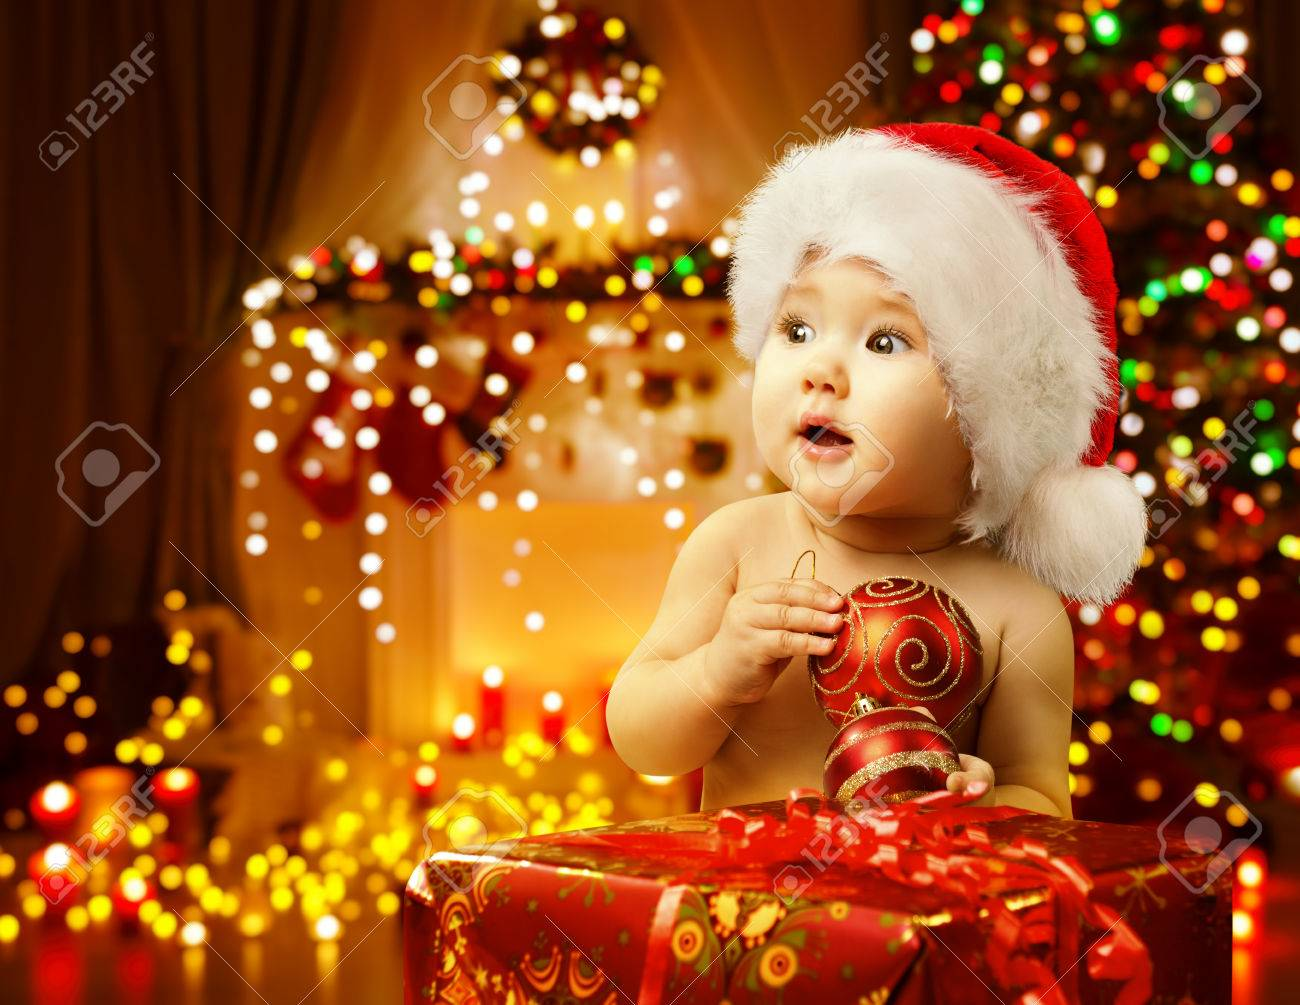 Christmas Baby Opening Present, Happy Kid in Santa Hat, Xmas Gift Box, Child Looking Side - 63802539